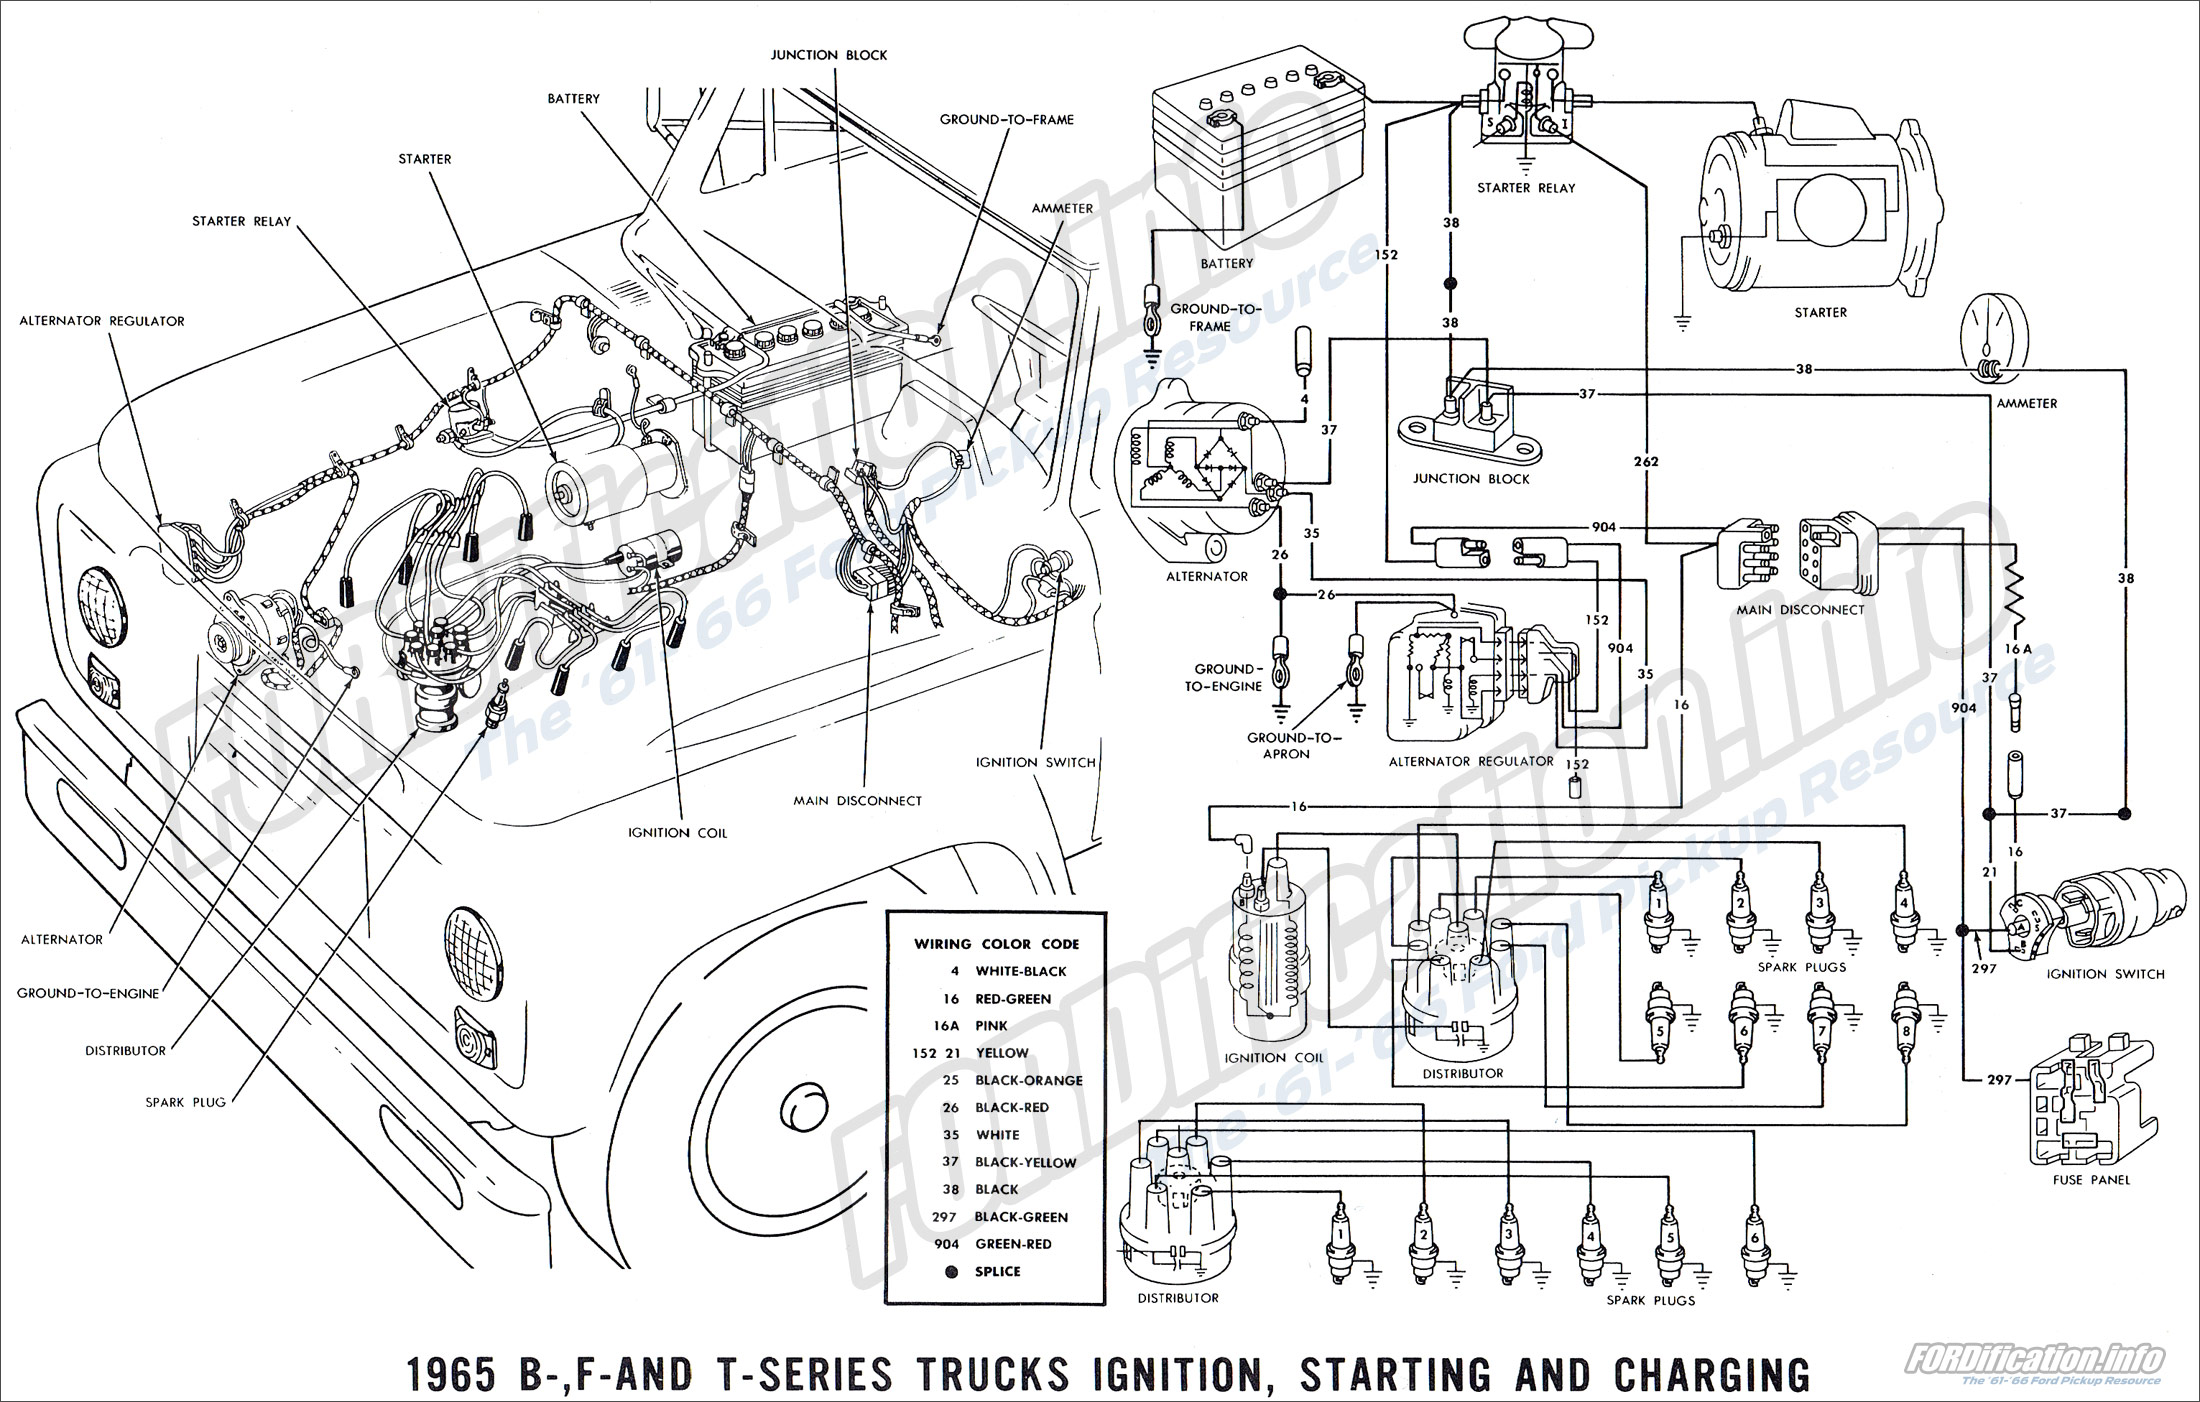 1965 ford truck wiring 1965 ford truck wiring diagrams - fordification.info - the ... 1965 ford truck alternator wiring diagram